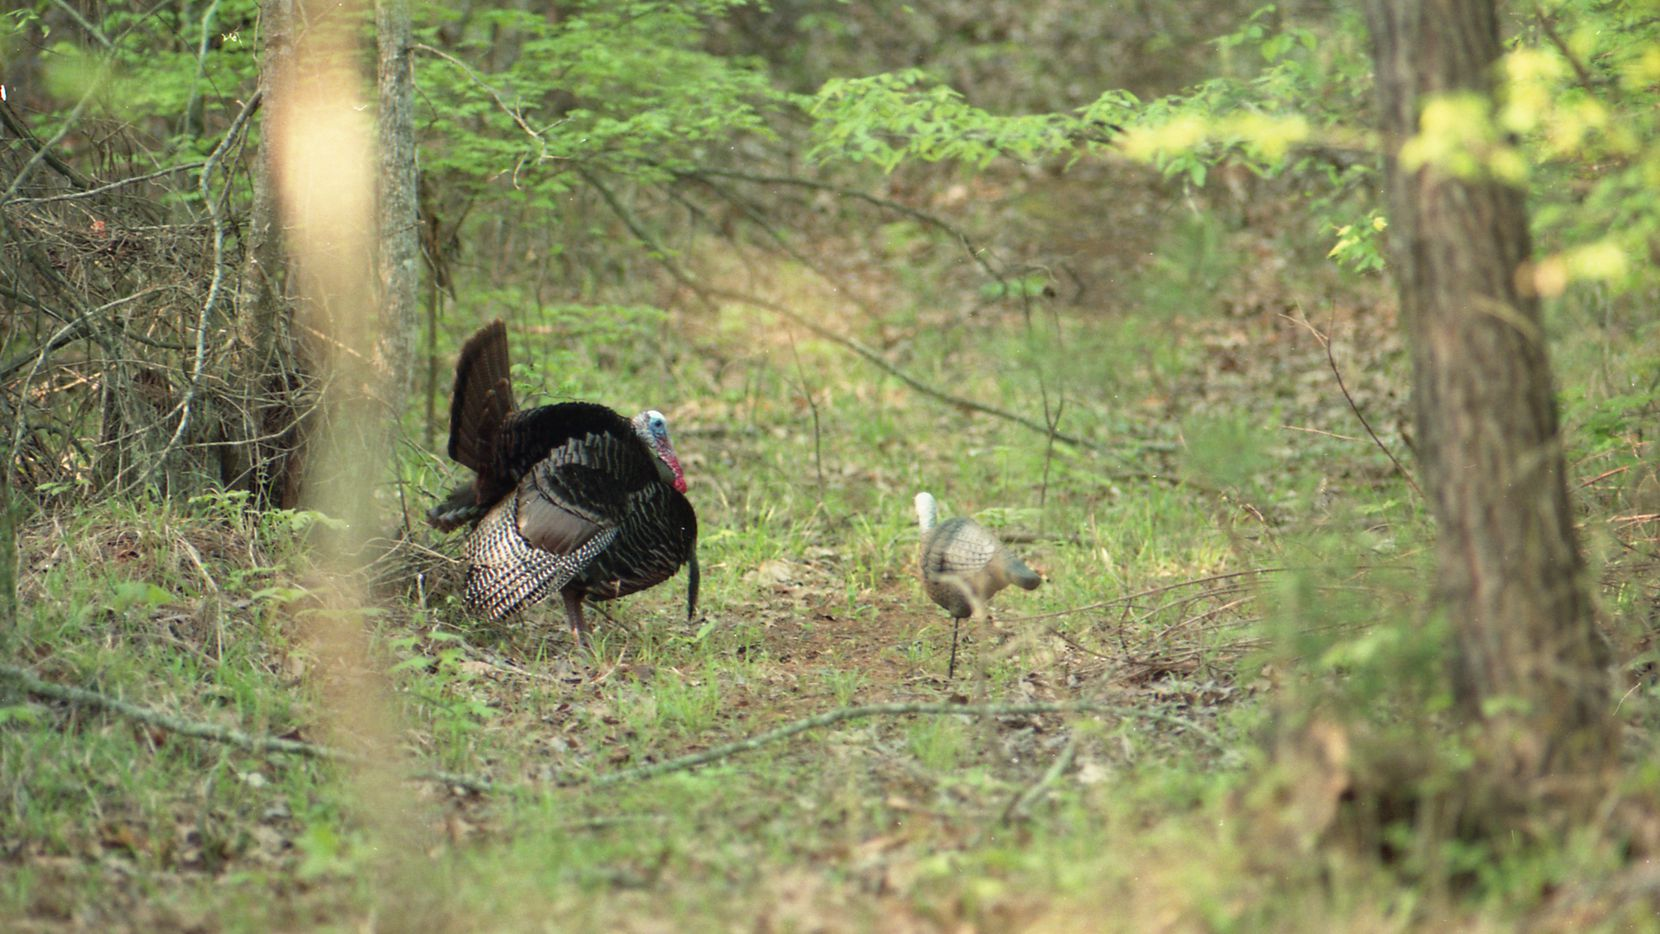 Spring is the breeding season for wild turkeys. The allure for spring turkey hunters is the challenge of calling a mature tom into shotgun range, 30 yards or less.